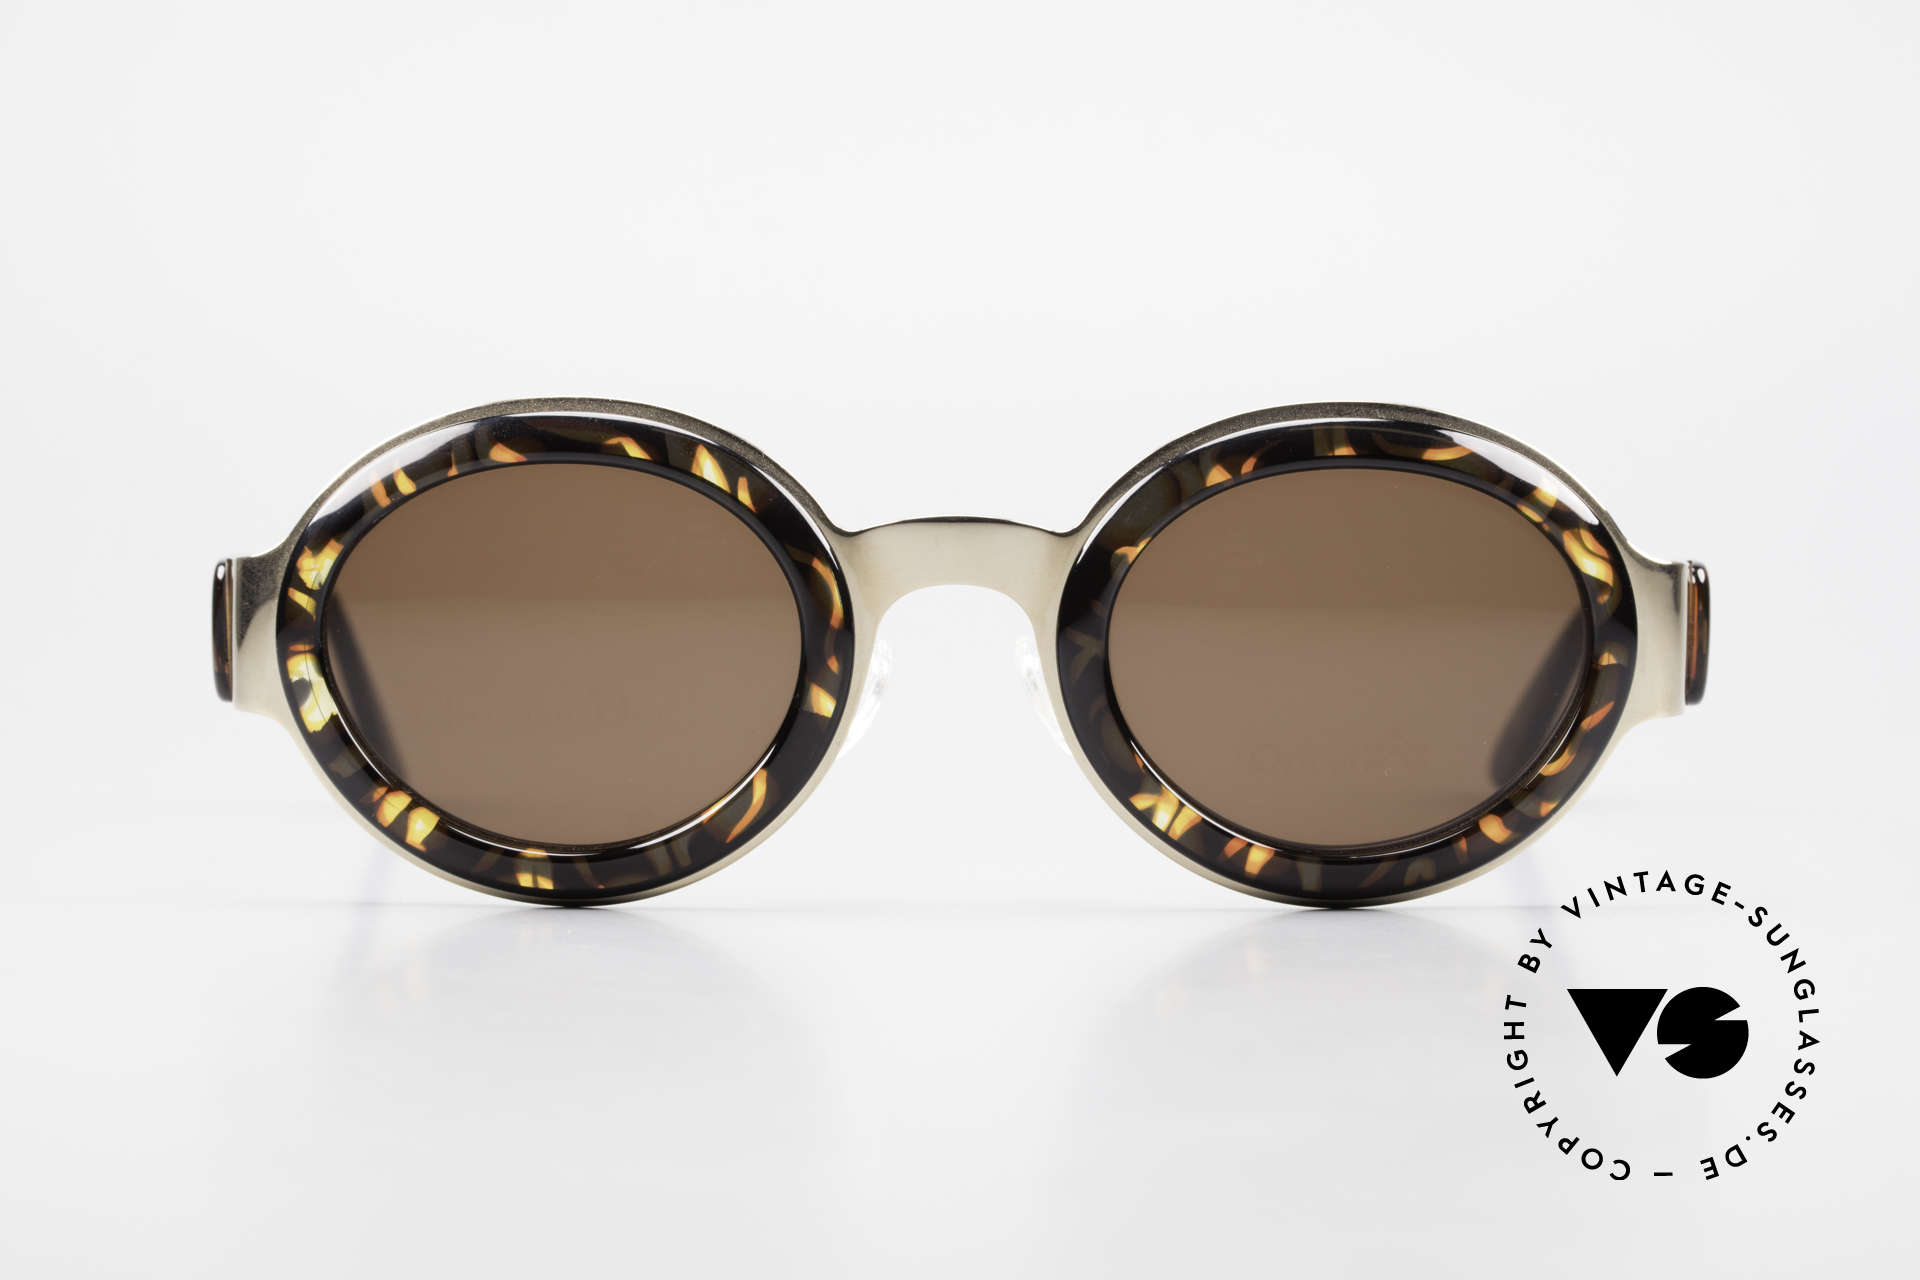 Christian Dior 2037 Round Ladies Sunglasses 90's, interesting vintage sunglasses from app. 1995/1996, Made for Women